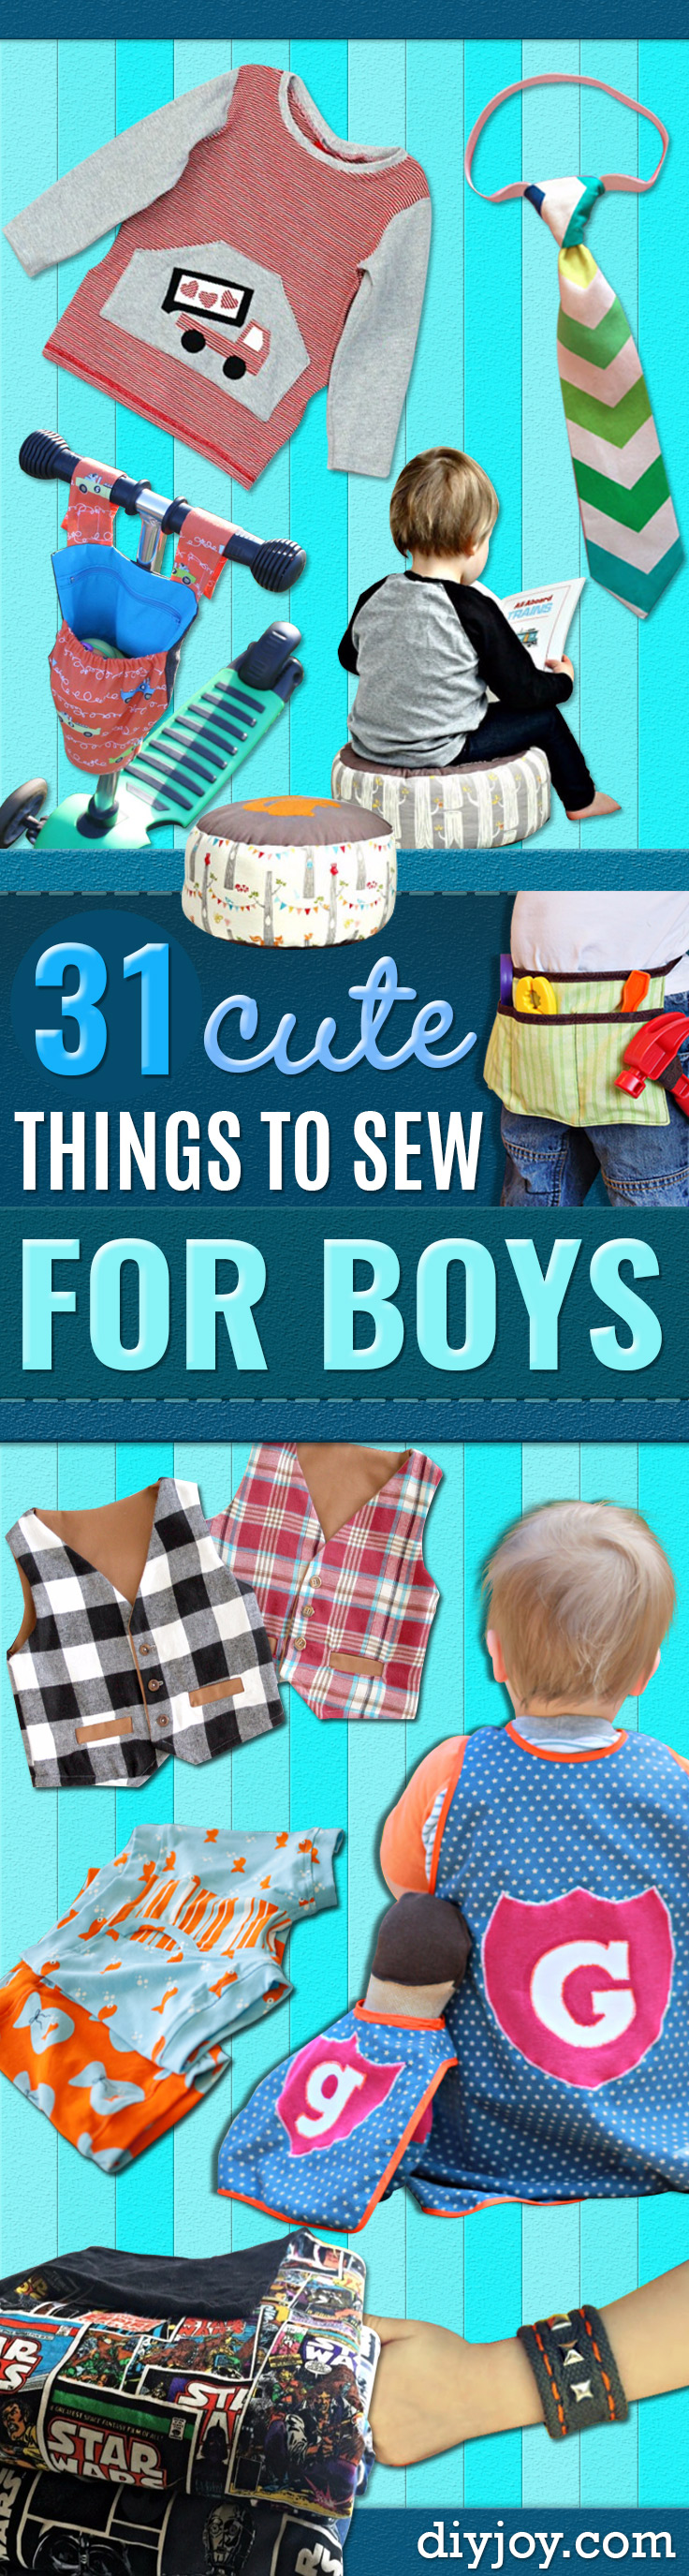 Sewing Projects to Make For Boys - Easy Sewing Tutorials for Baby Kids - DIY Baby Shower Presents - Free Patterns and Step by Step Tutorials for Clothes, Jackets, Jeans, Shirts, Pants, Hats, Backpacks and Bags - Quick Things to Sew for Toddlers Gift #sewing #baby #boys